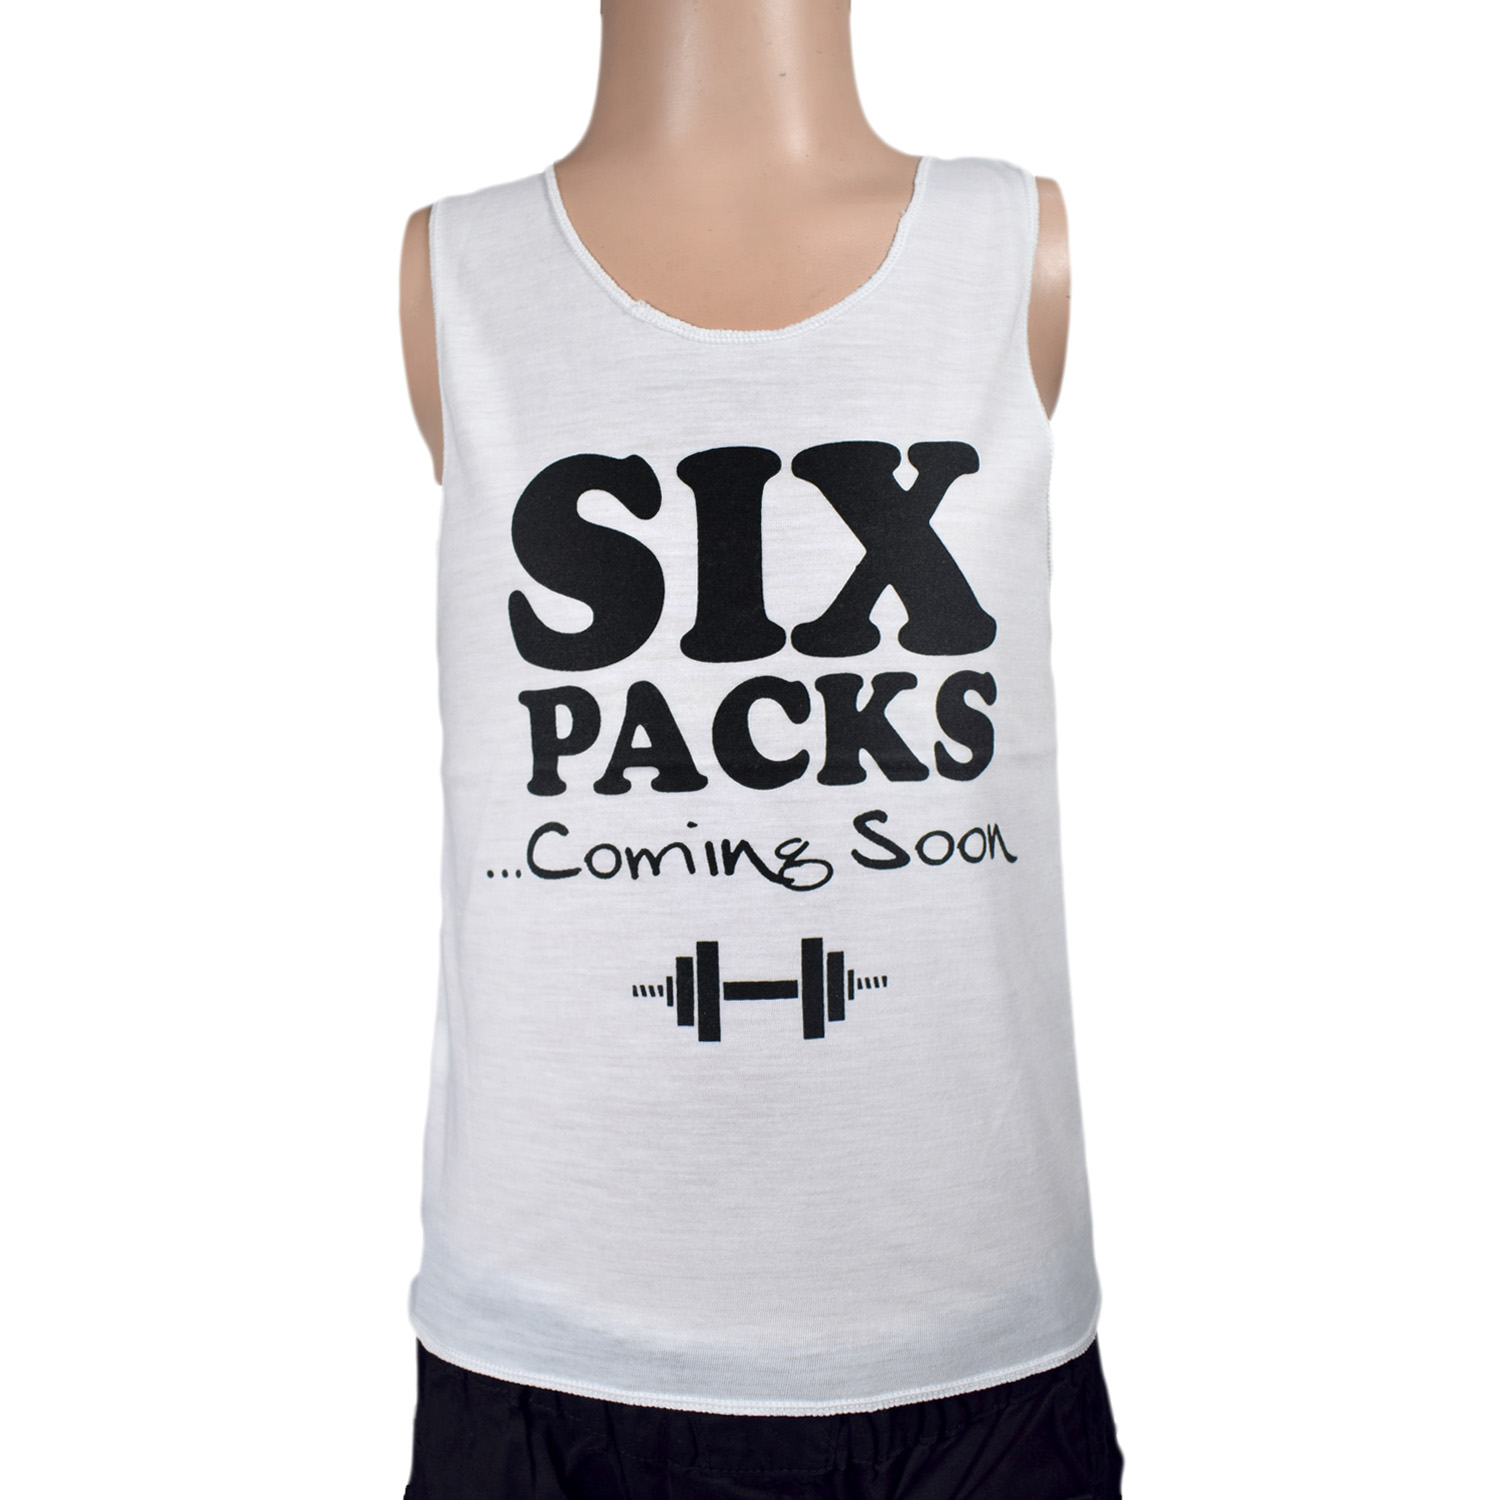 Six Packs Coming Soon Quotes Kids Trendy Vest White Baby S World